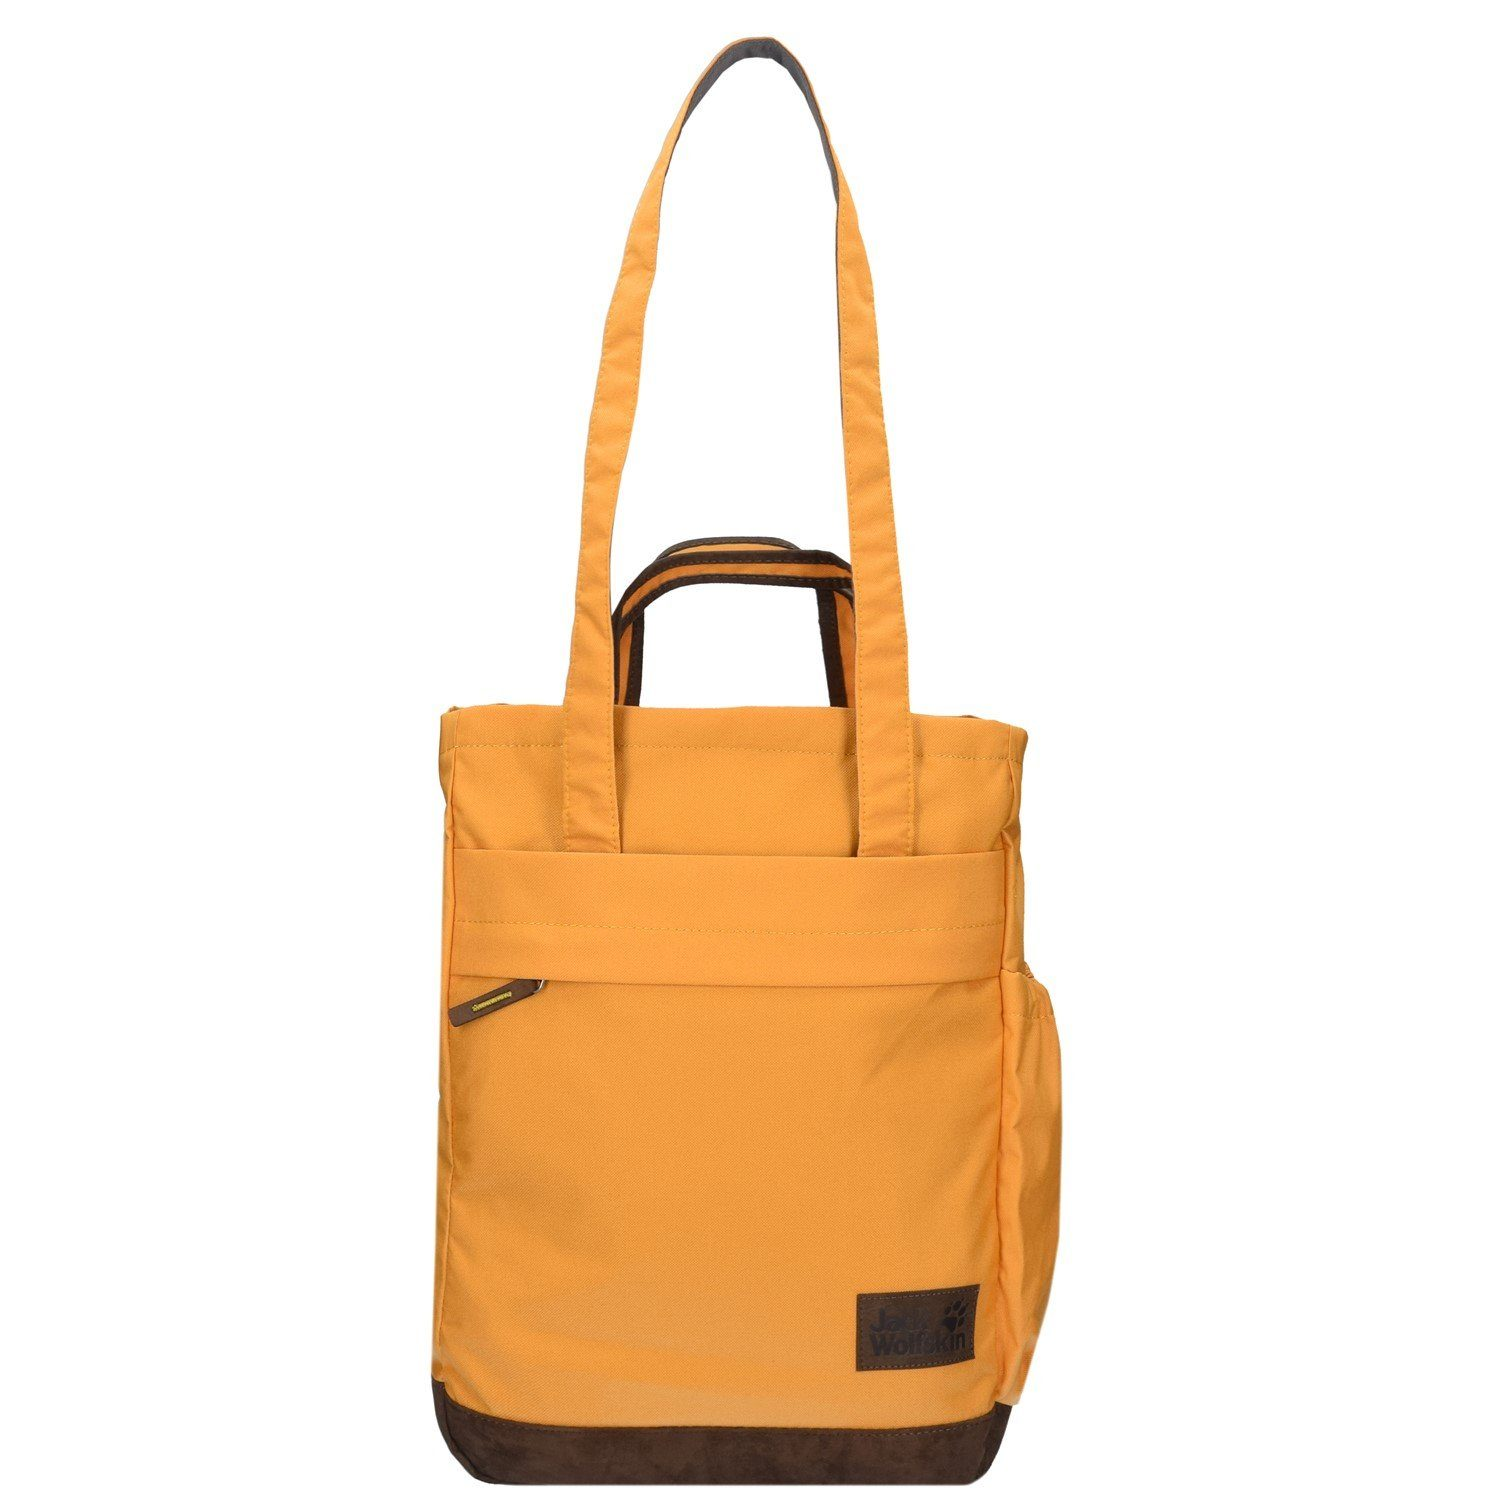 Daypacks & Bags Piccadilly Shopper Tasche 34 cm Jack Wolfskin